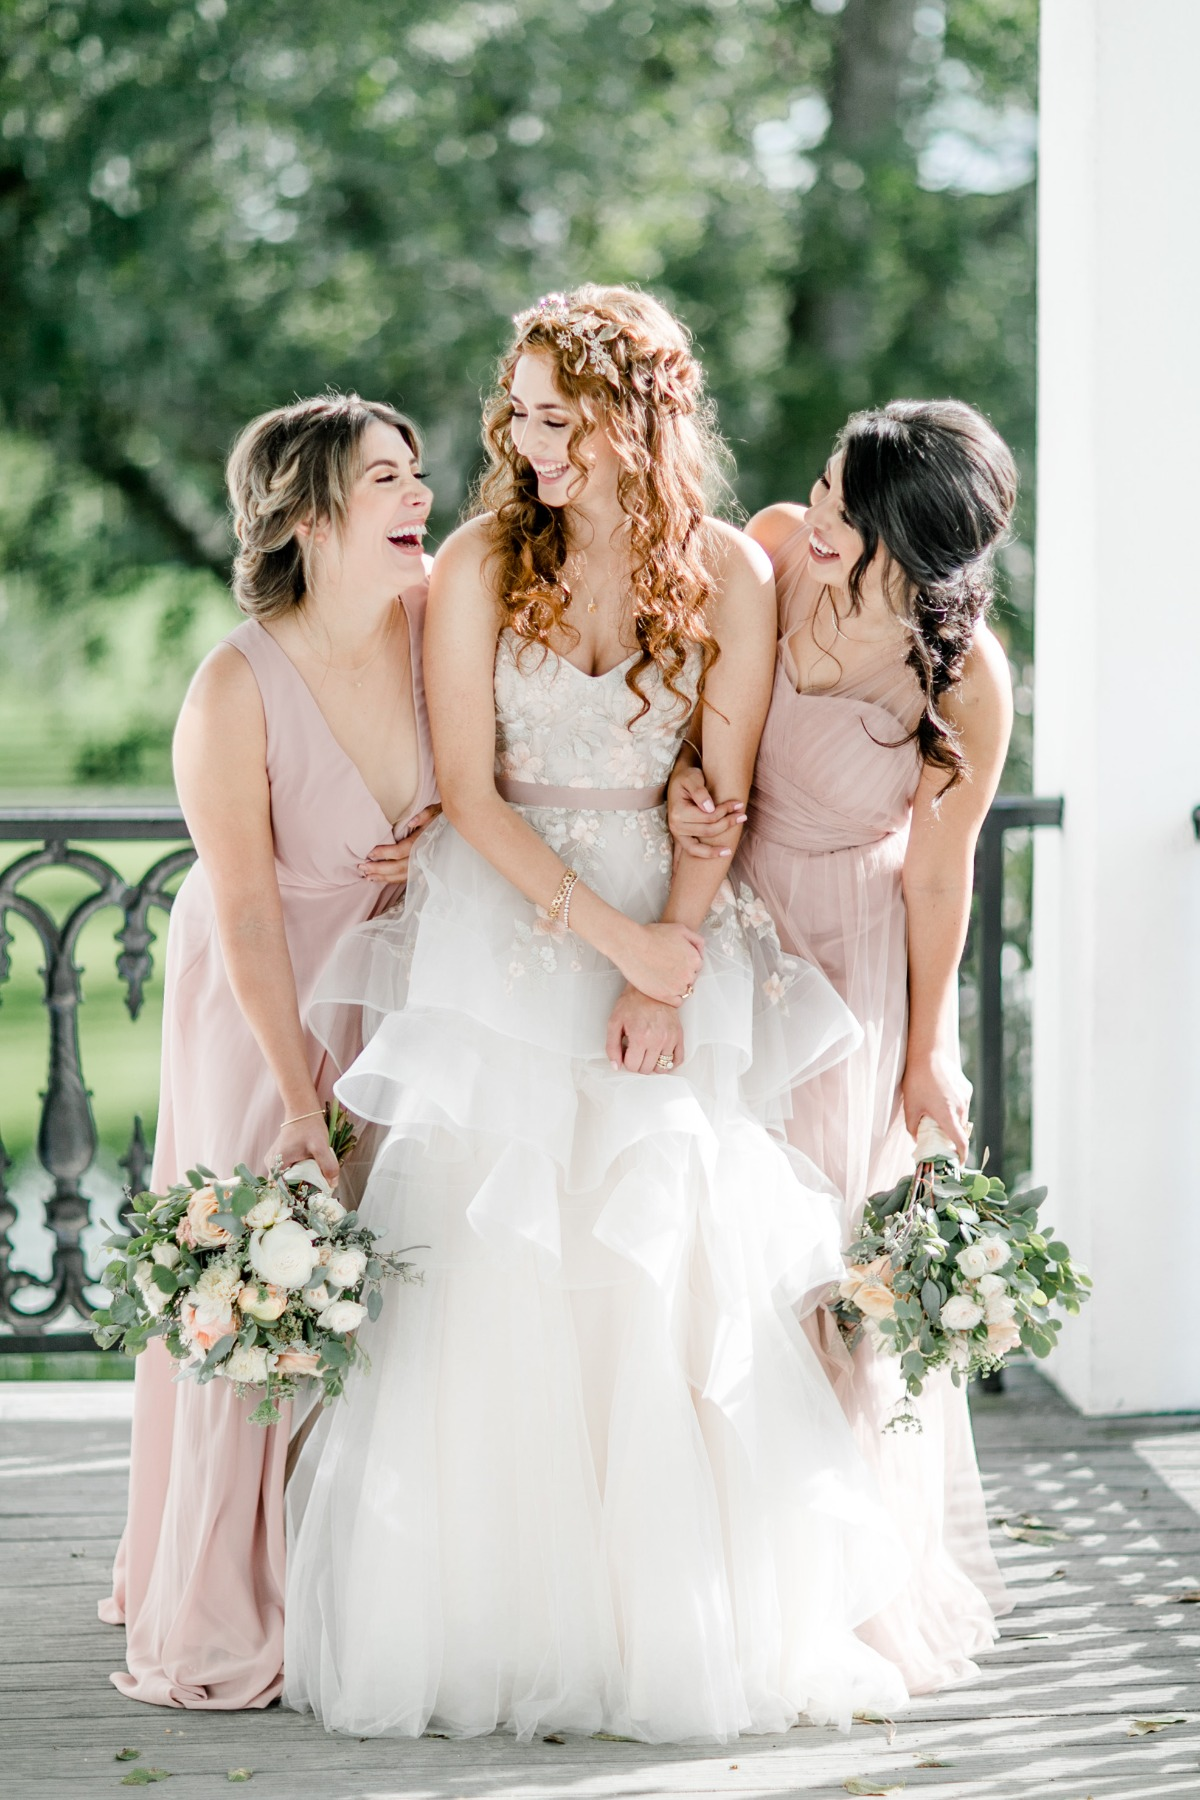 sweet bride and bridesmaids in dusty rose